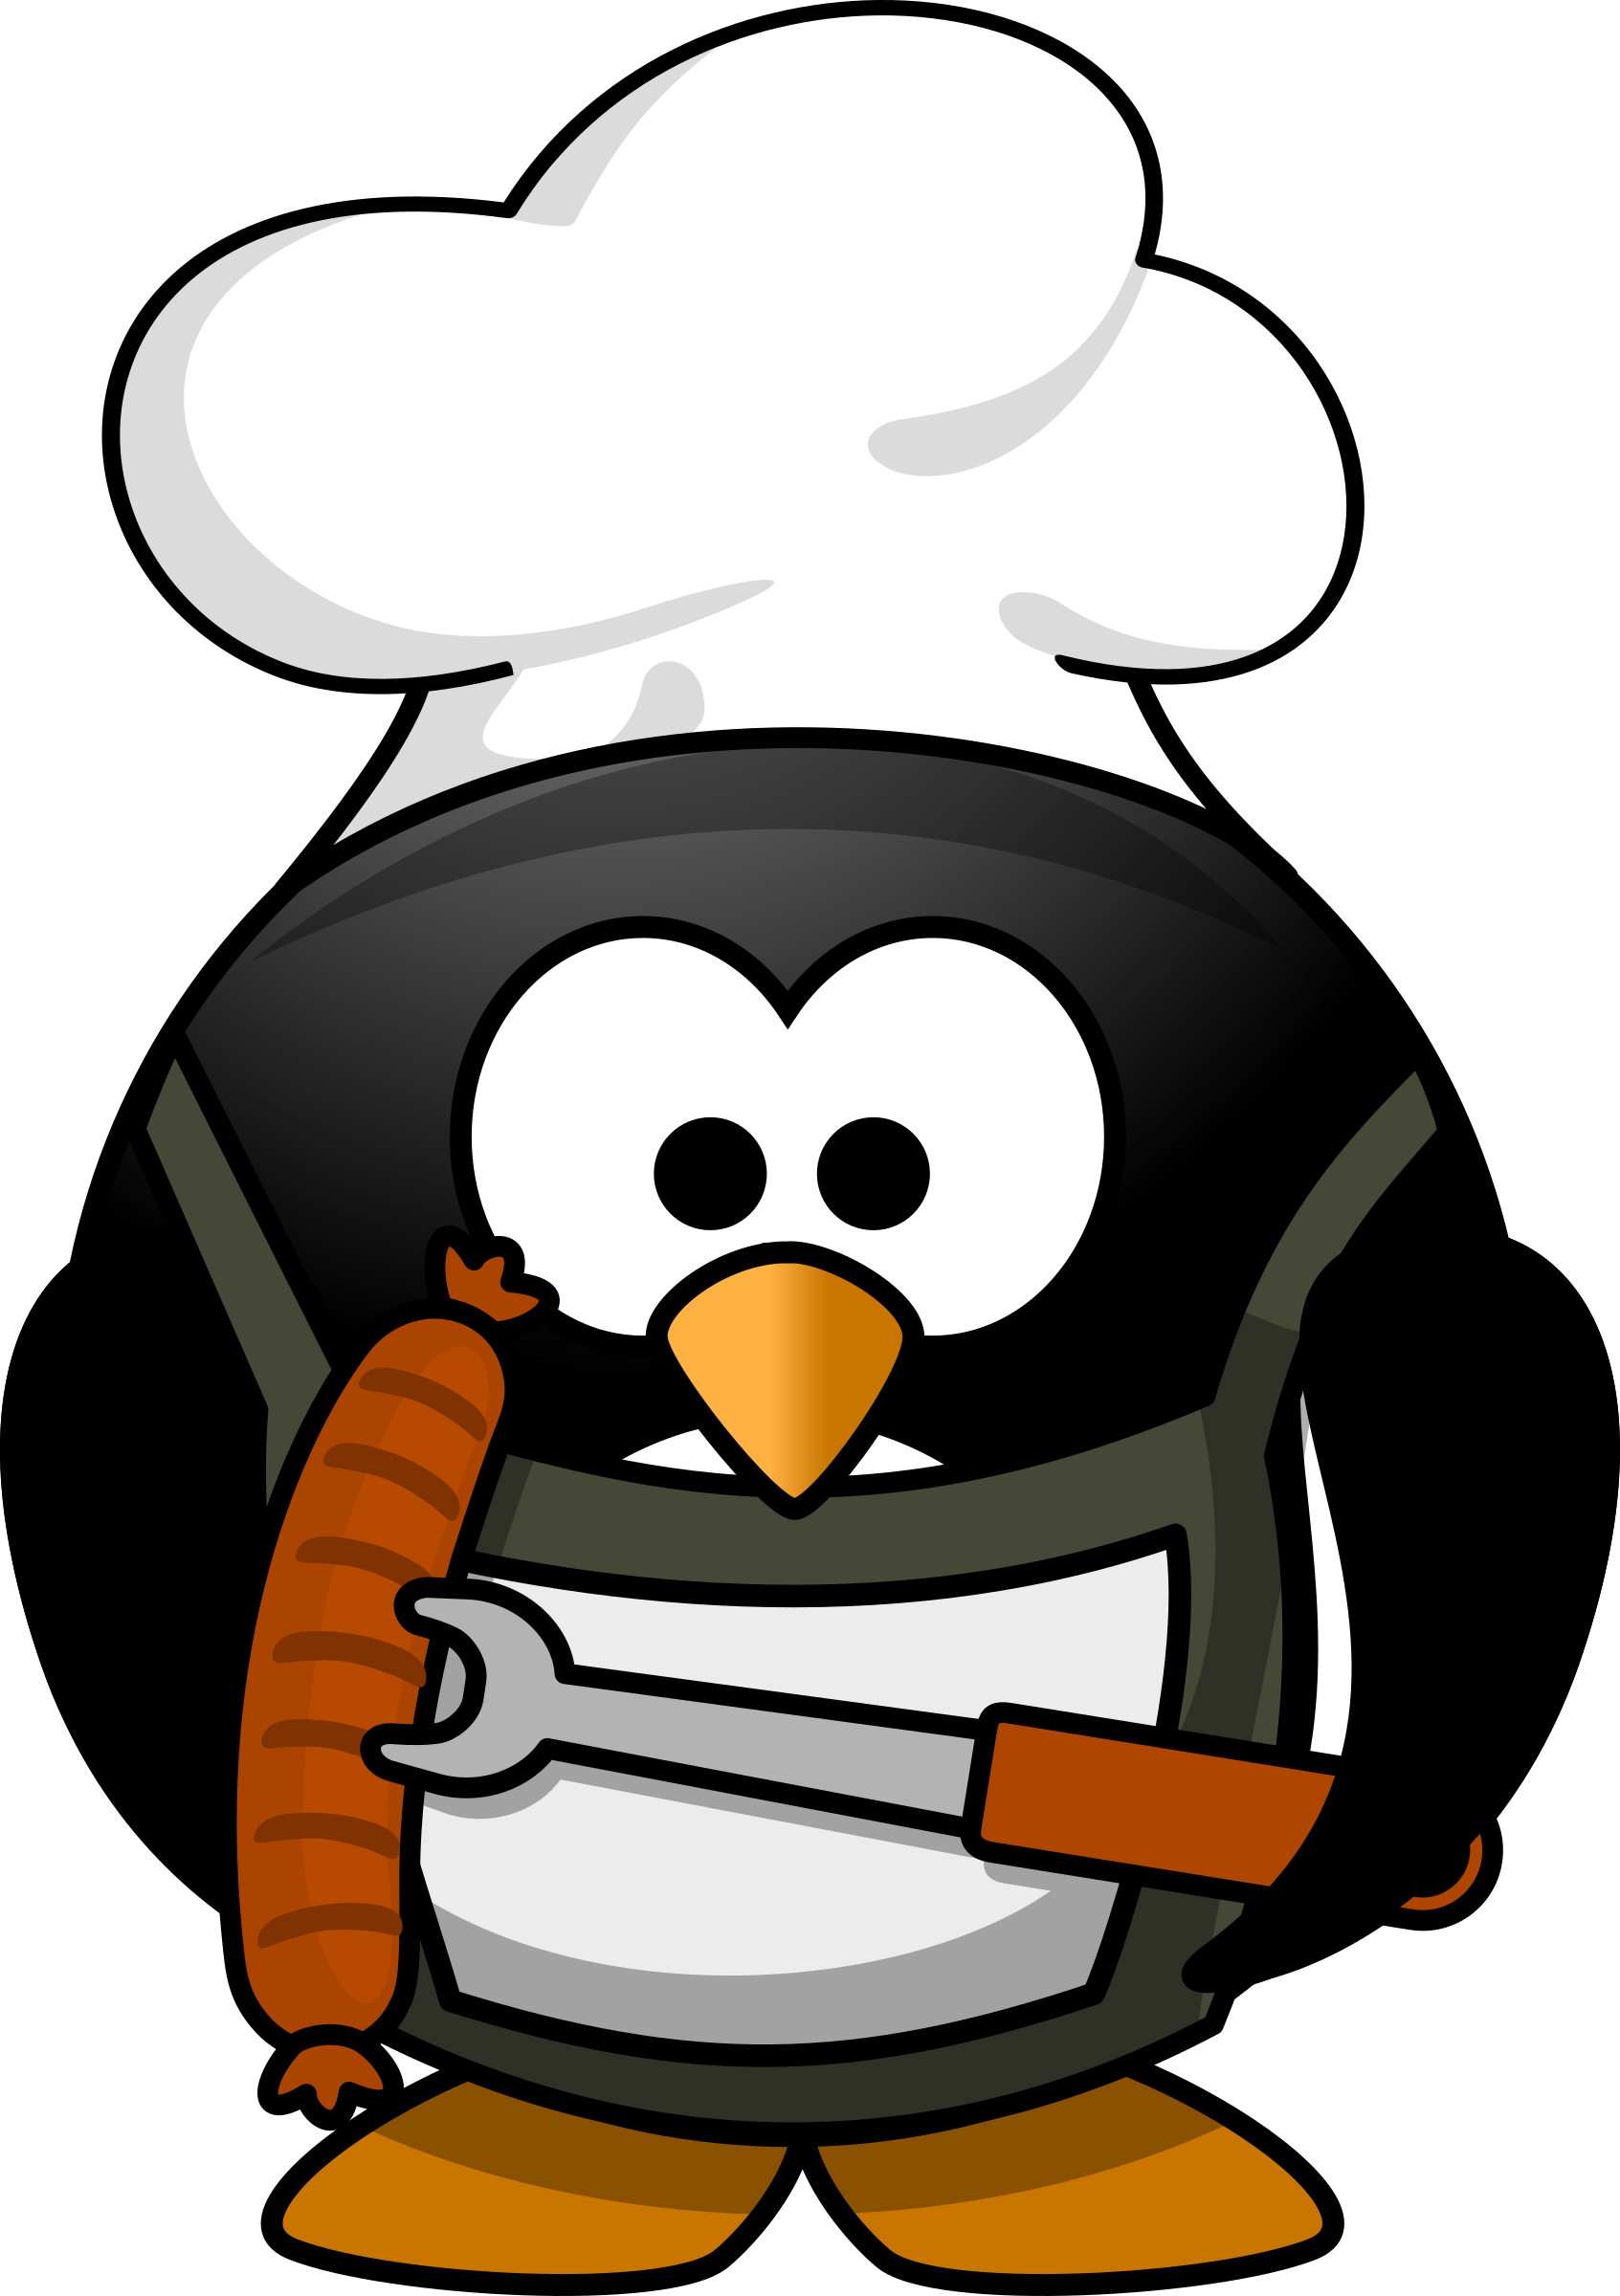 Grilling penguin  by dodger2